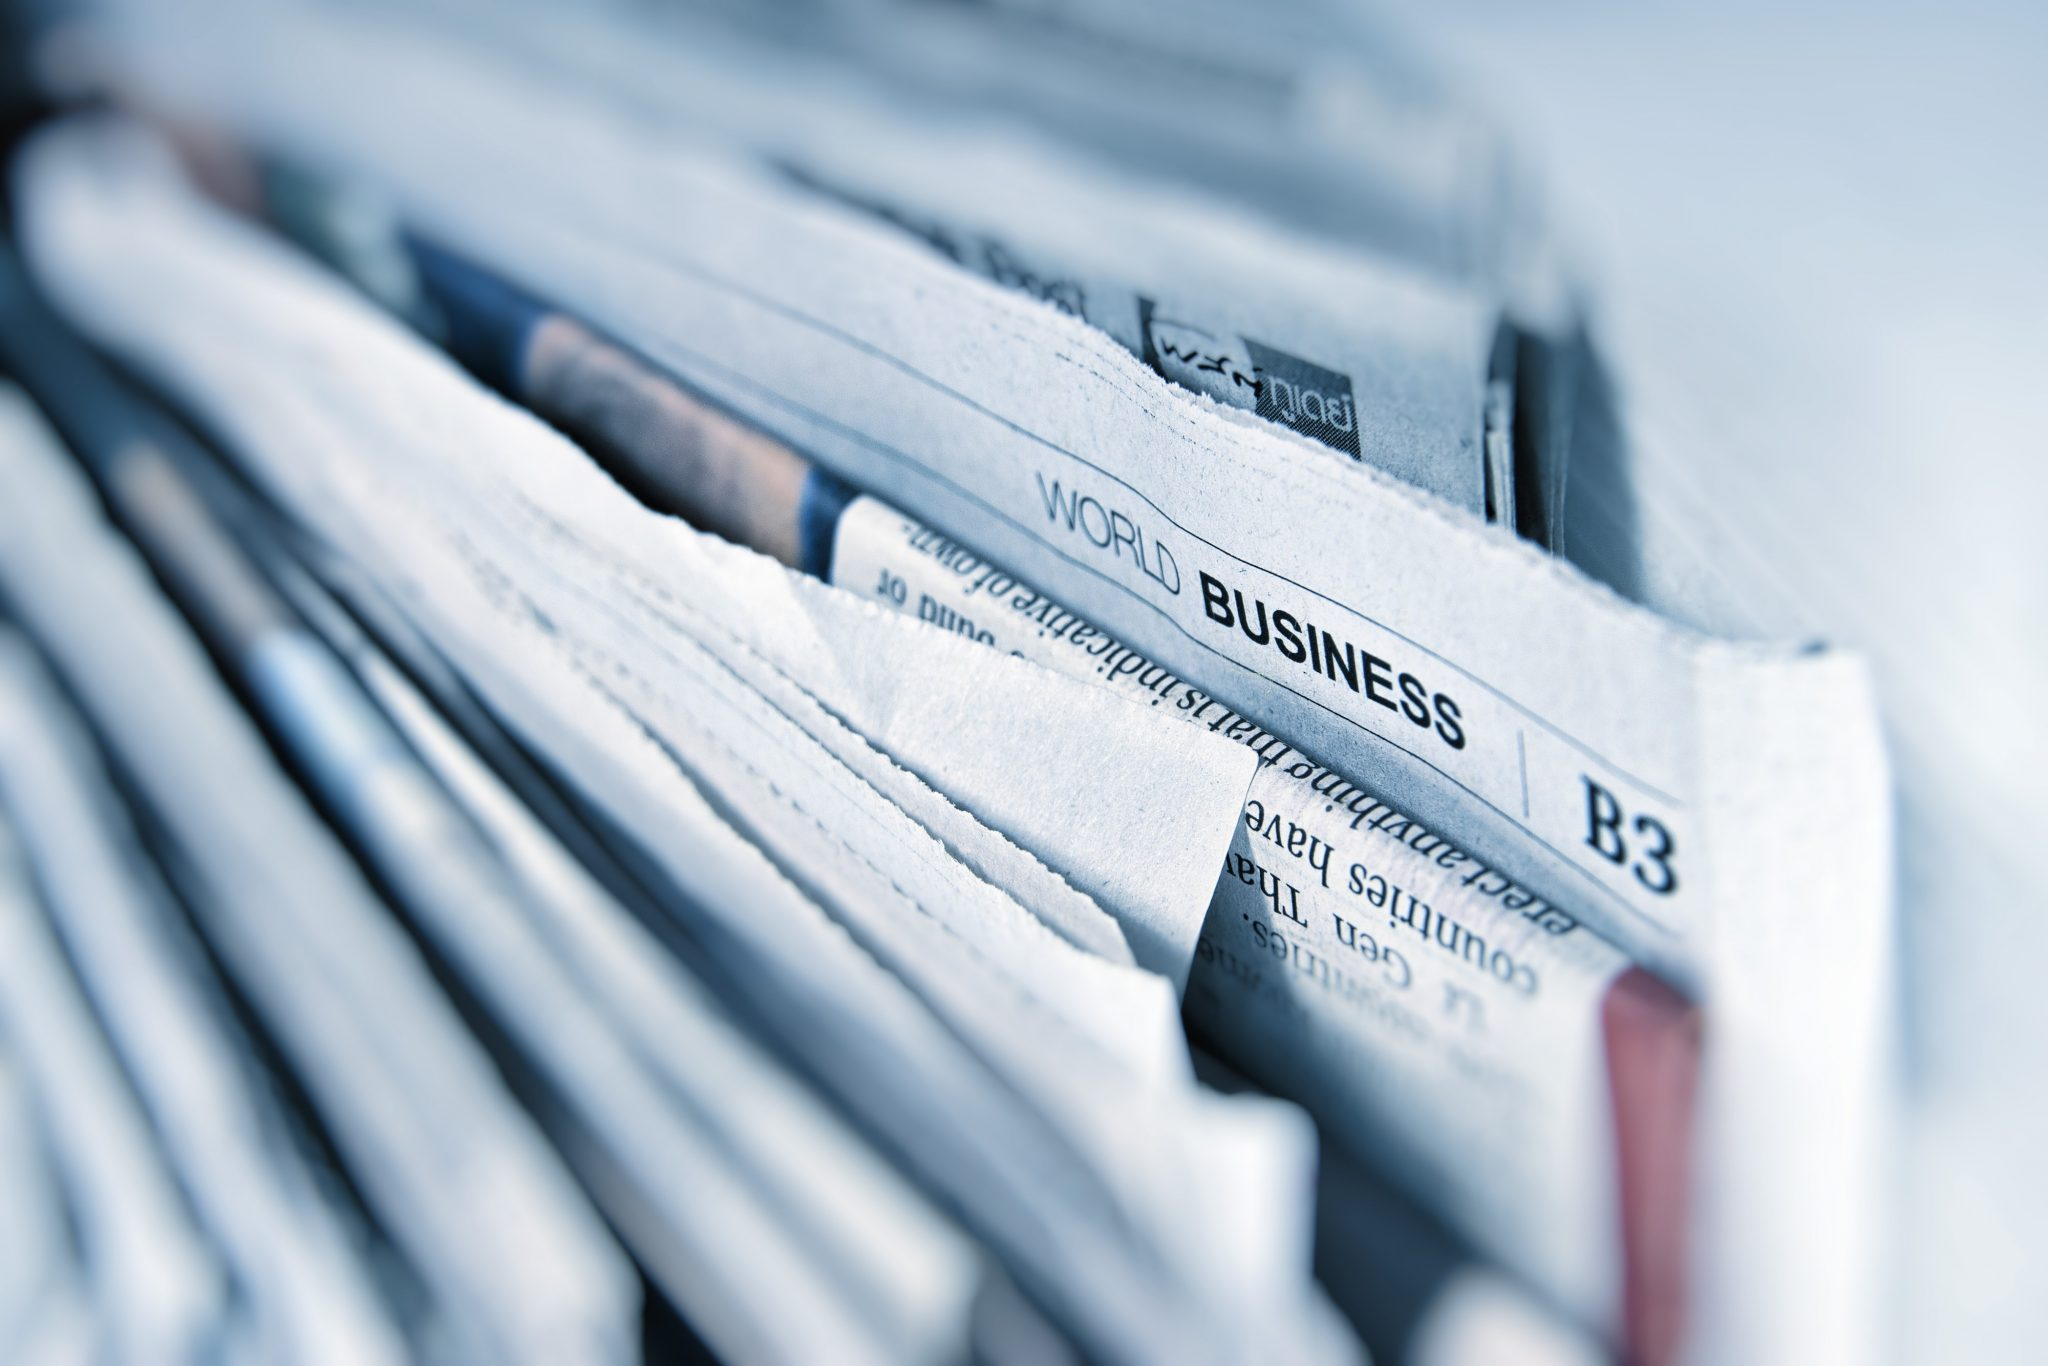 A picture of newspapers with the World Business section emphasised.